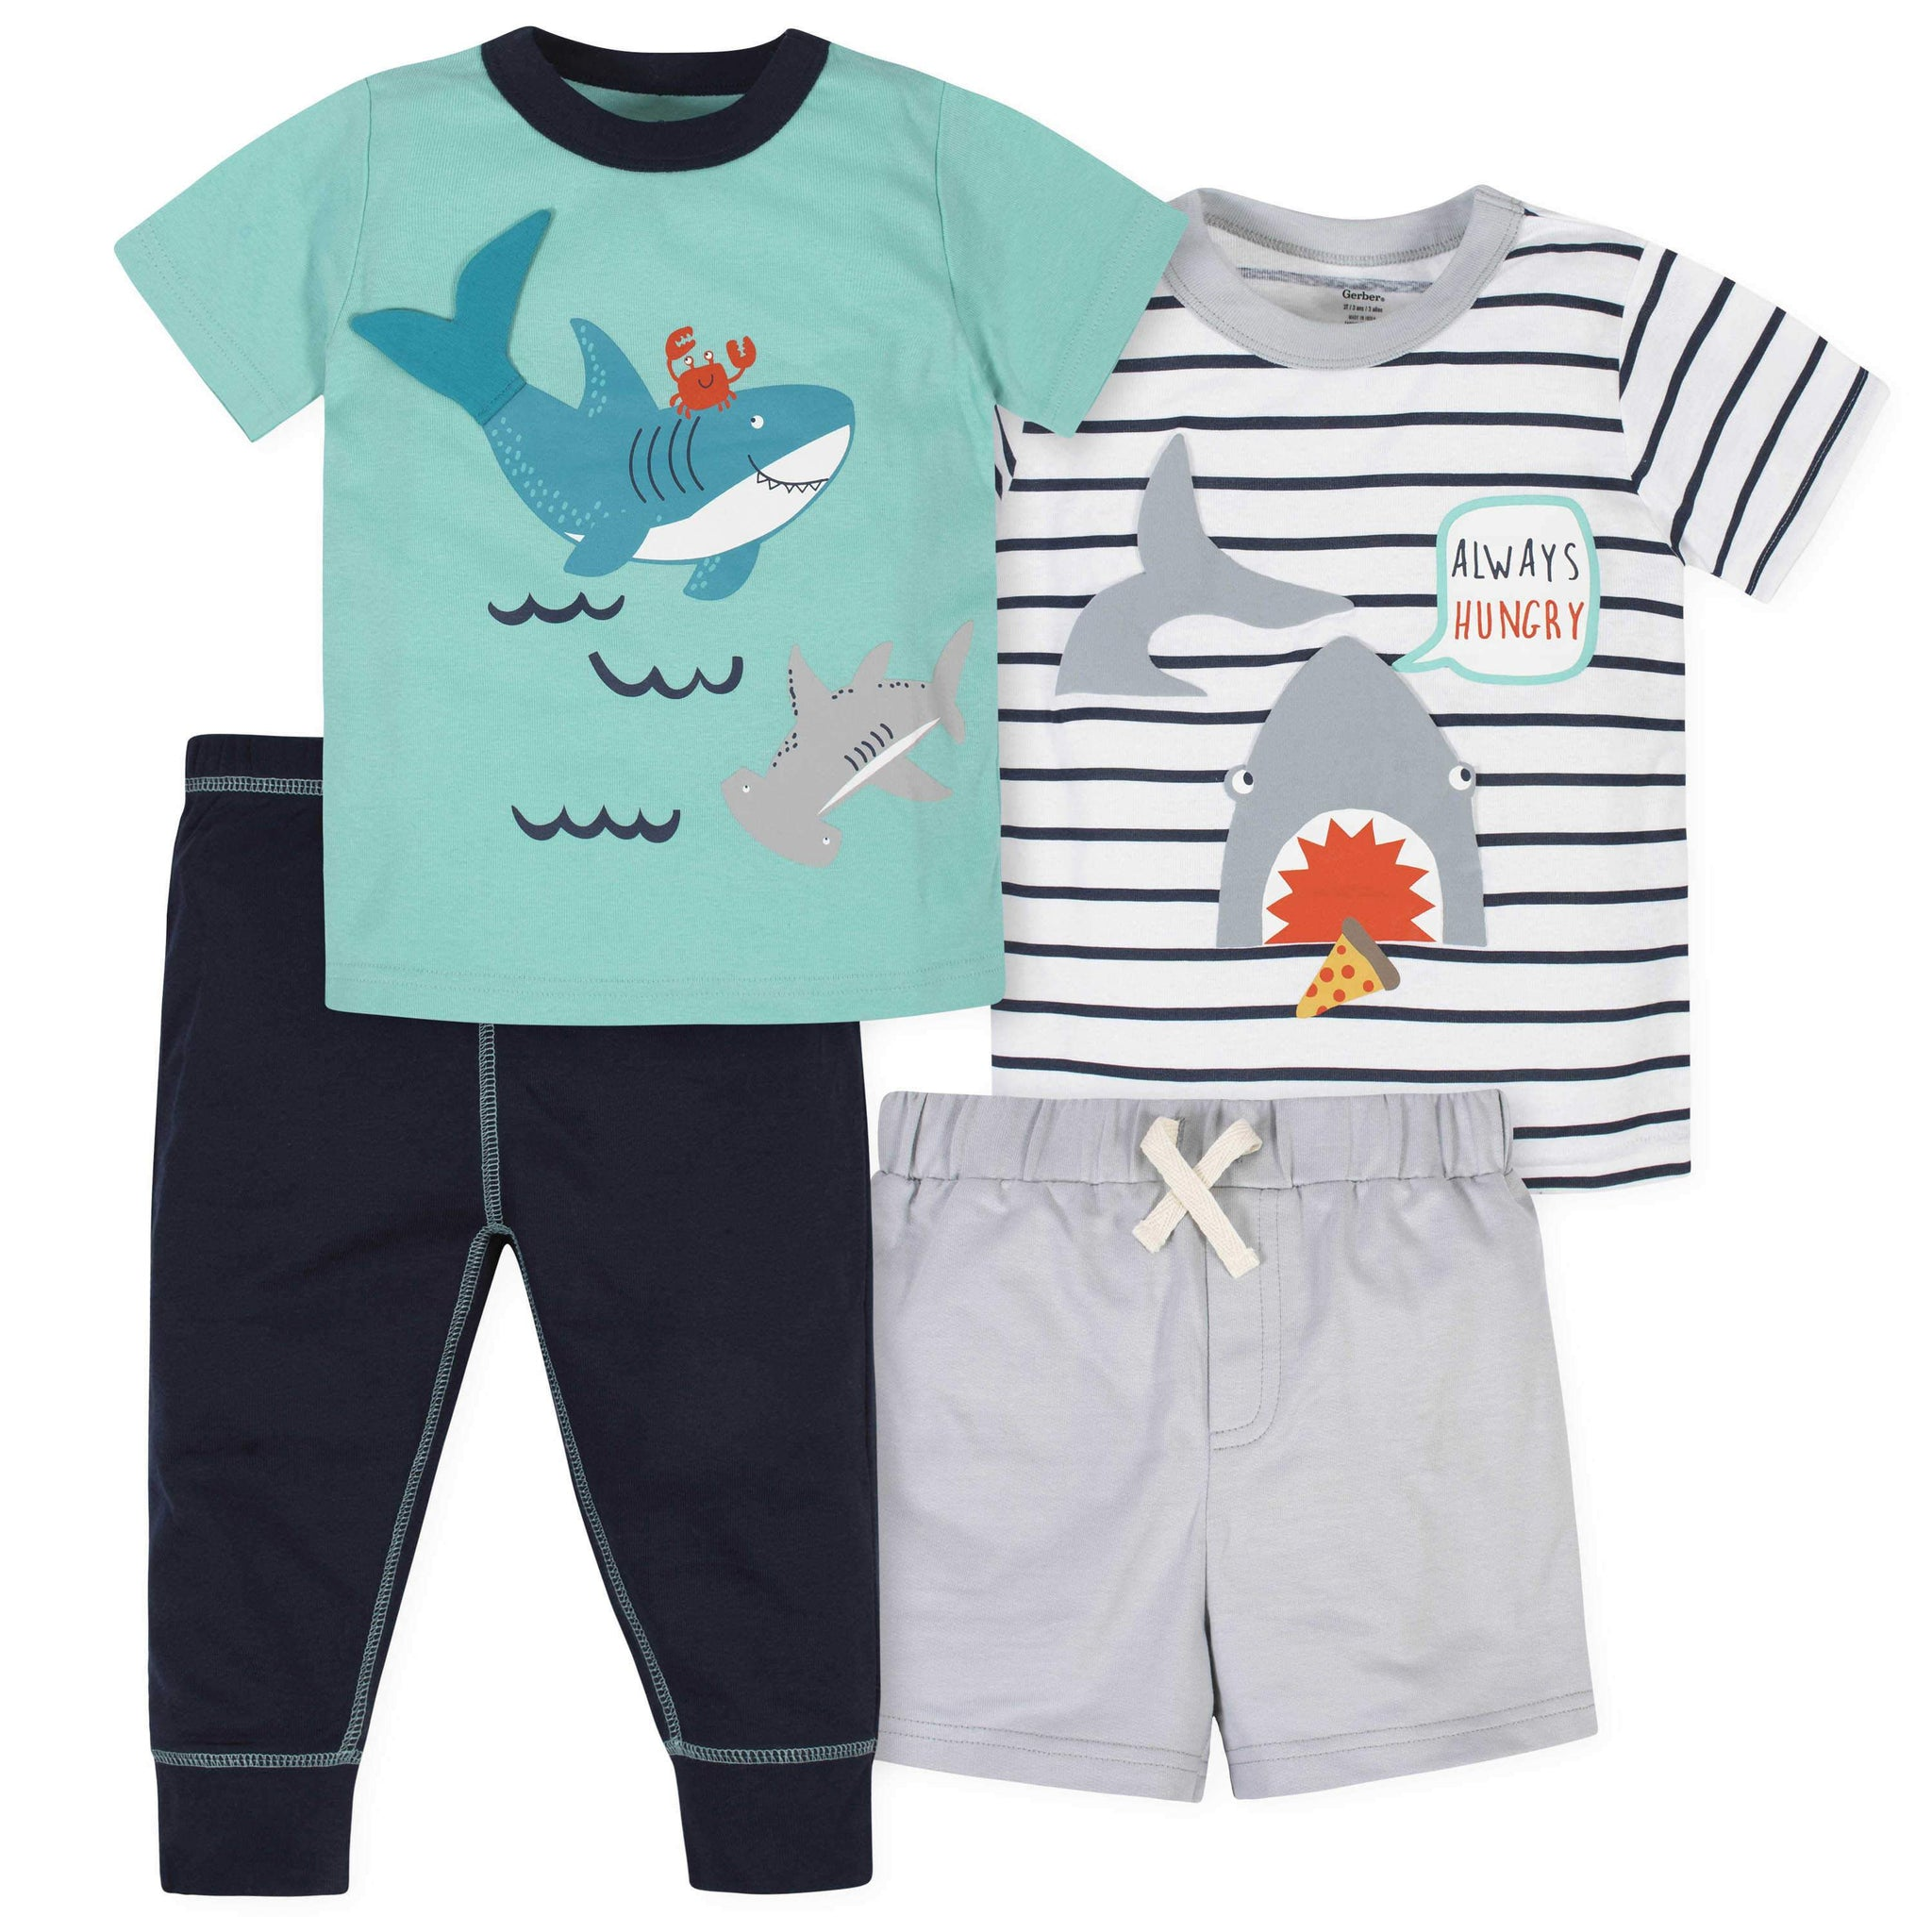 4-Piece Toddler Boys Shark Short, Shirts, and Active Pant Set